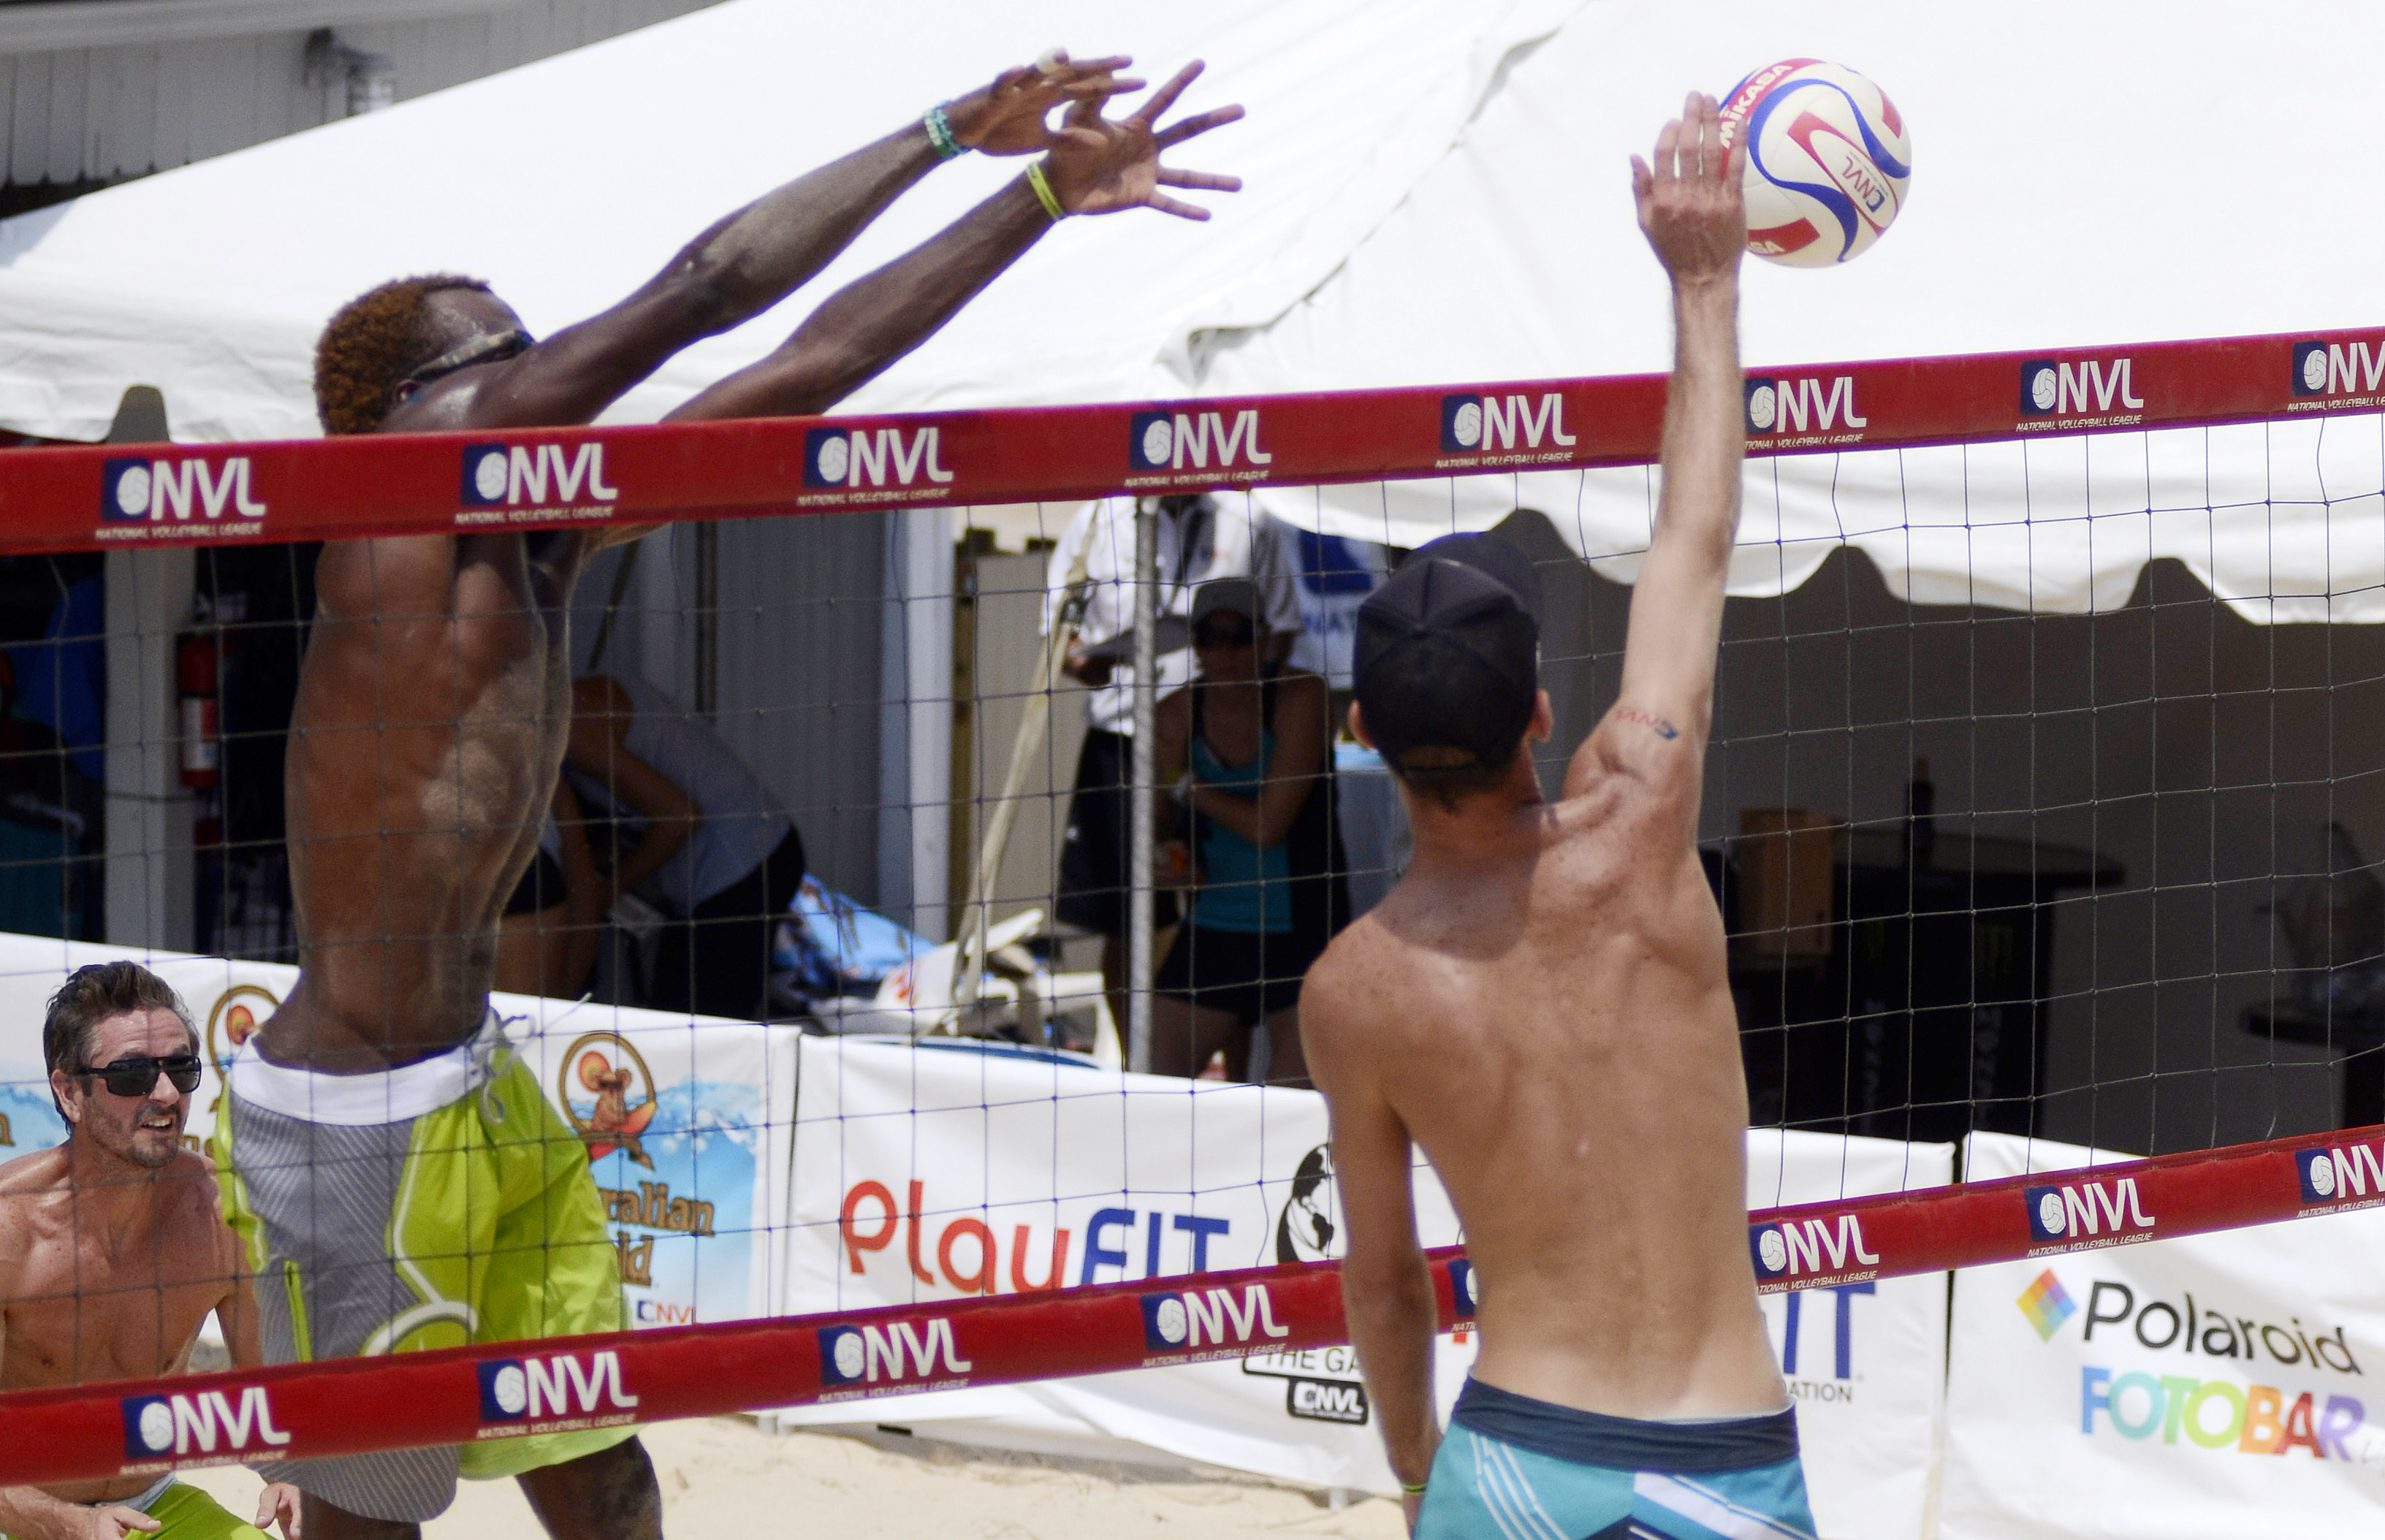 National Volleyball League Partners with Milwaukee IndyFest  to Host Pro Beach Tournament